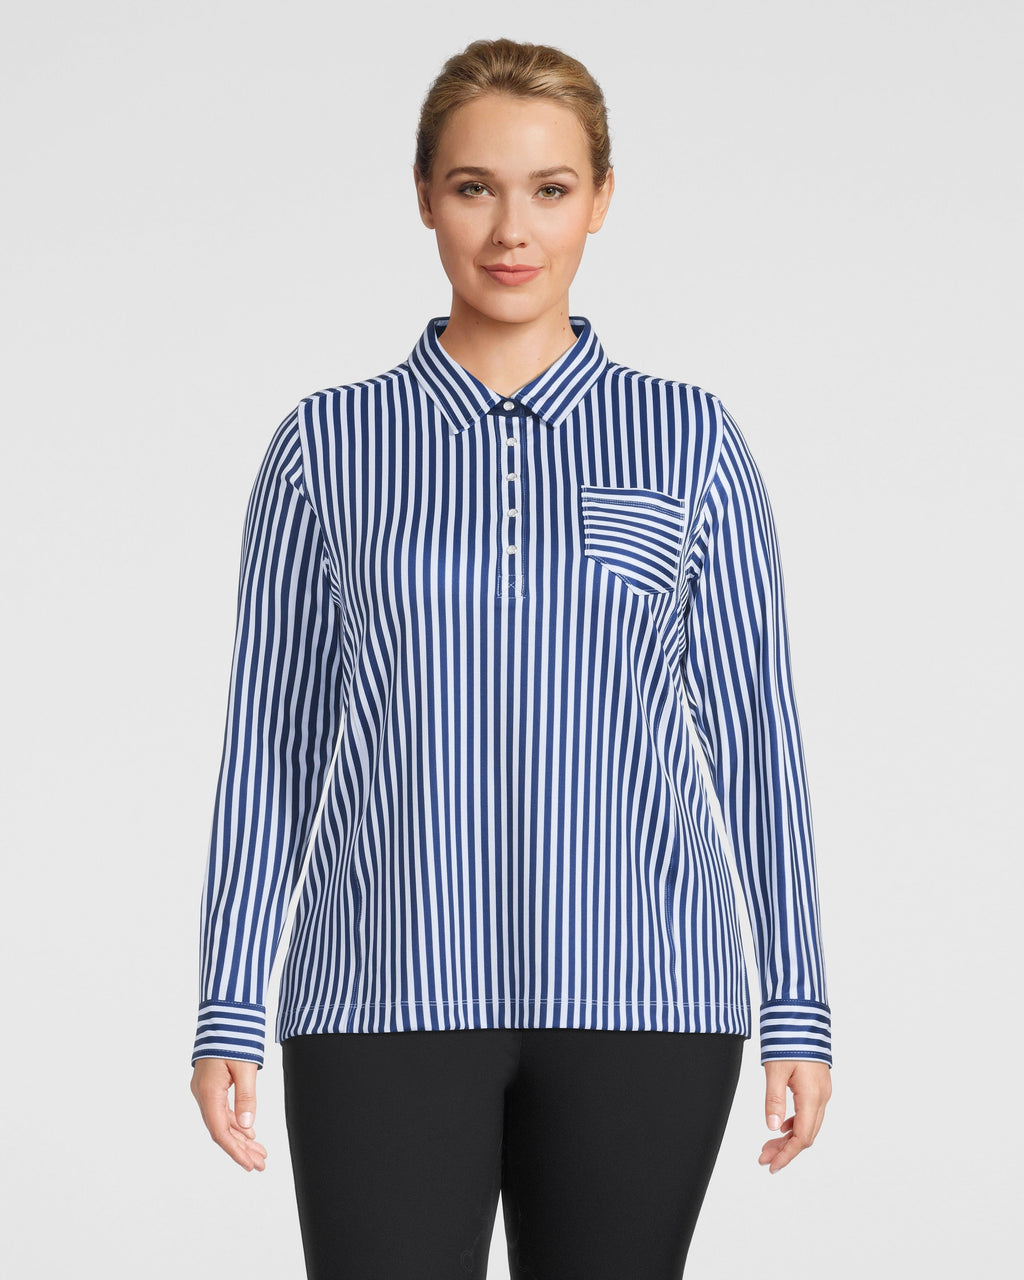 PS of Sweden Curvy Carola UV Protection Magic Shirt